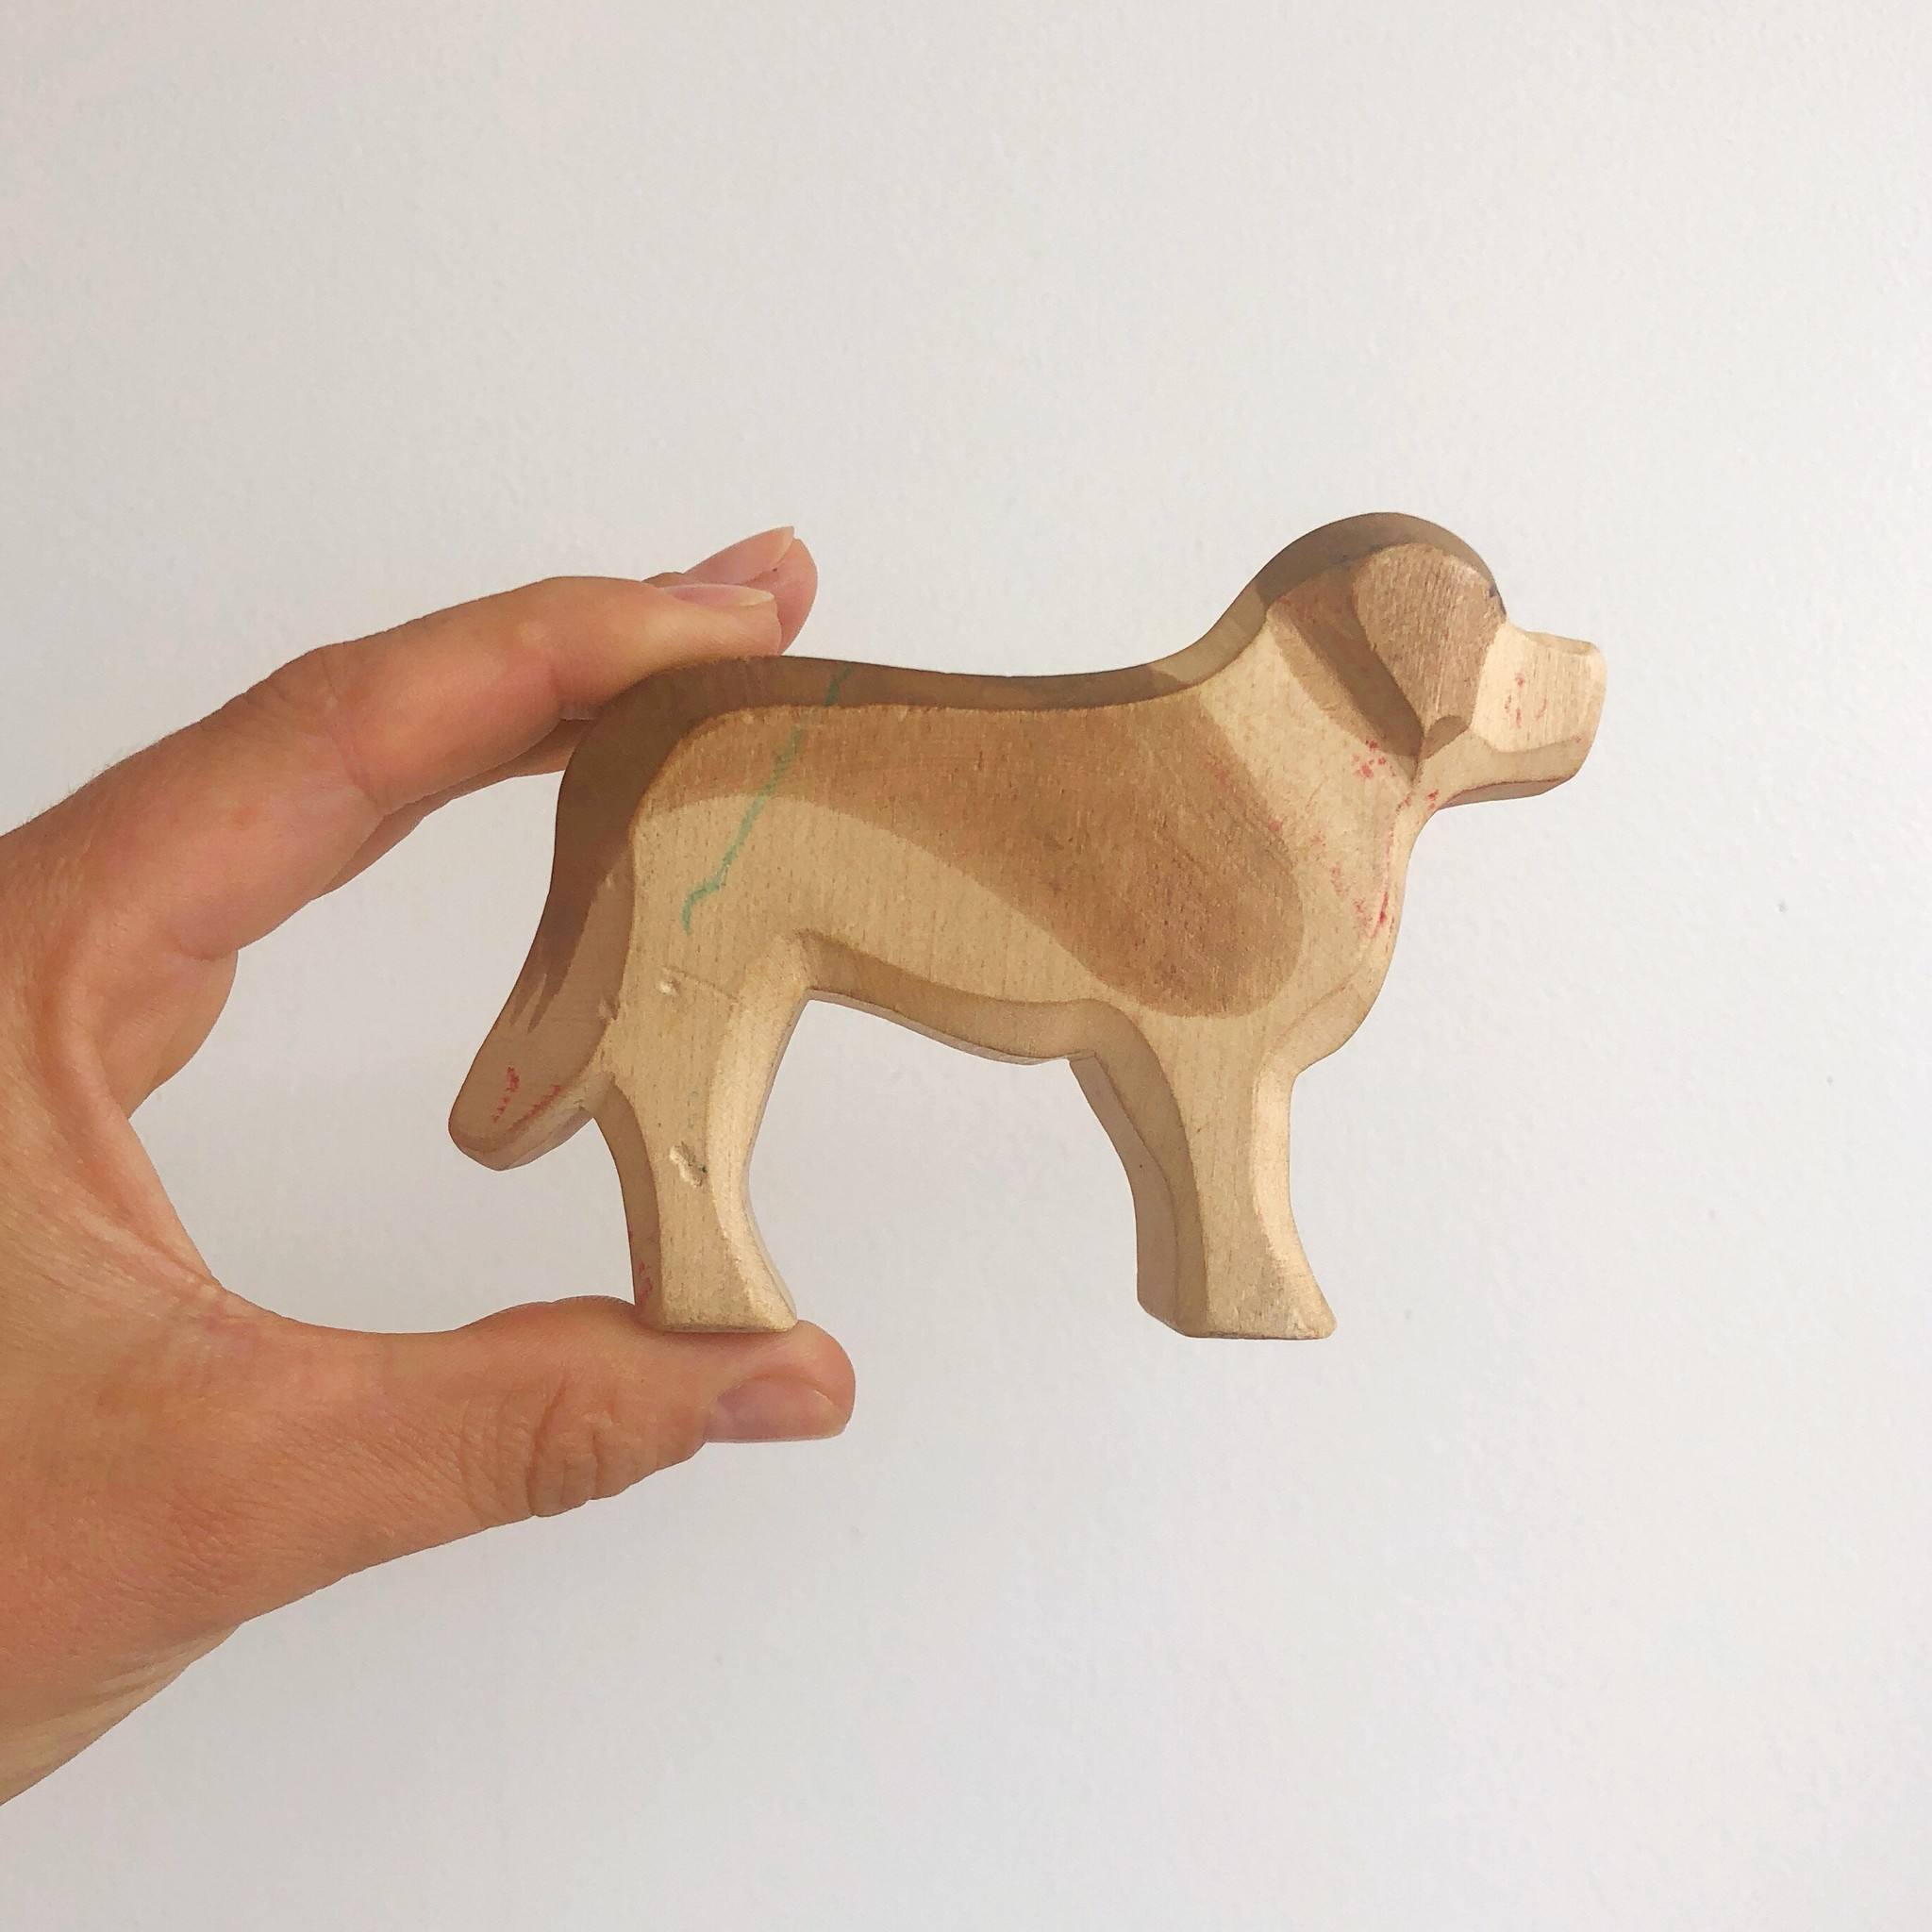 St Bernard Wooden Animal